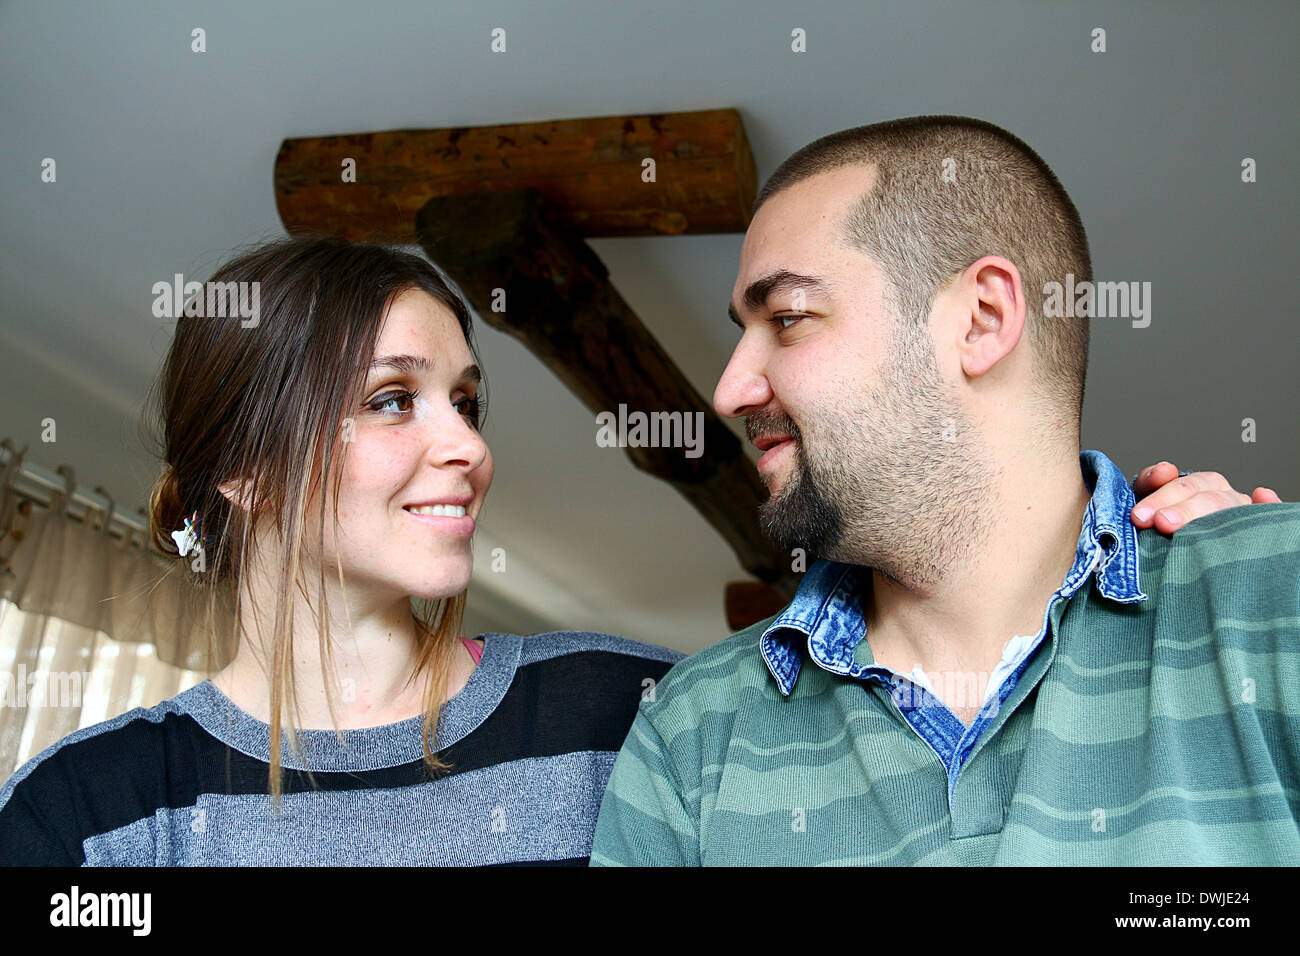 Young Turkish Couple Looking At Each Other Stock Photo